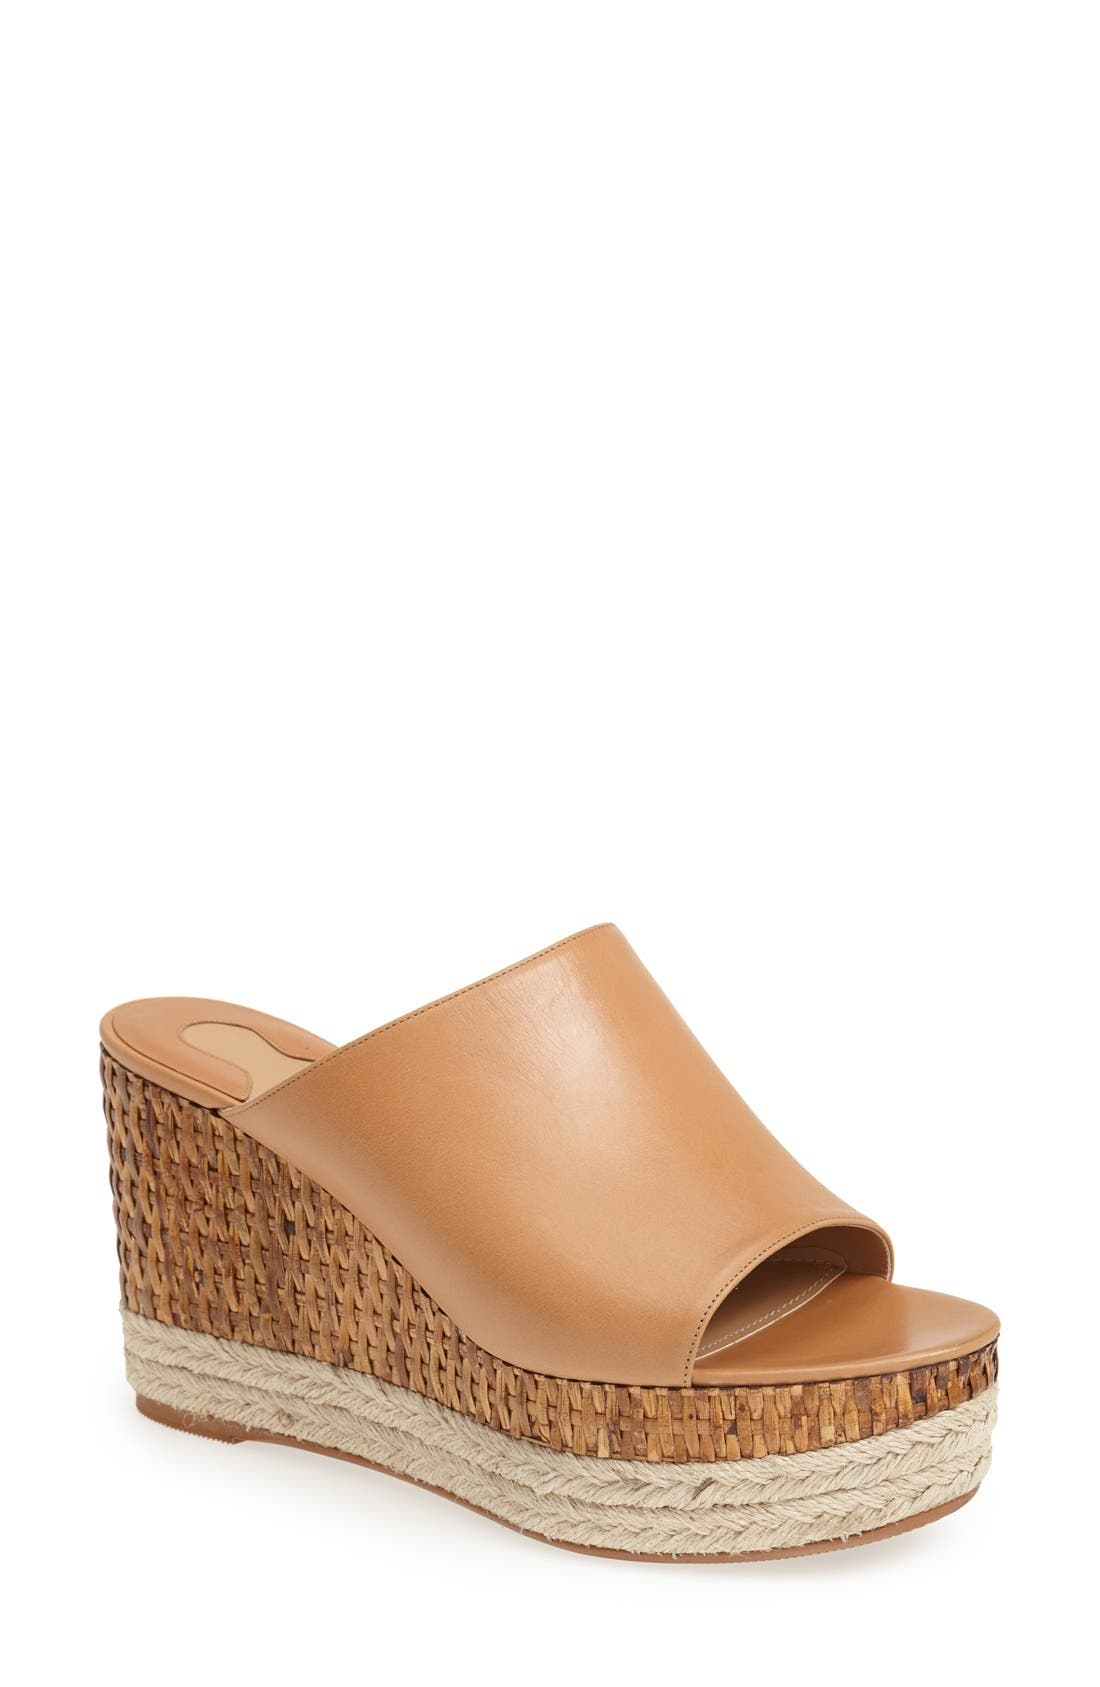 Alternate Image 1 Selected - Salvatore Ferragamo 'Maimei' Wedge Sandal (Women)